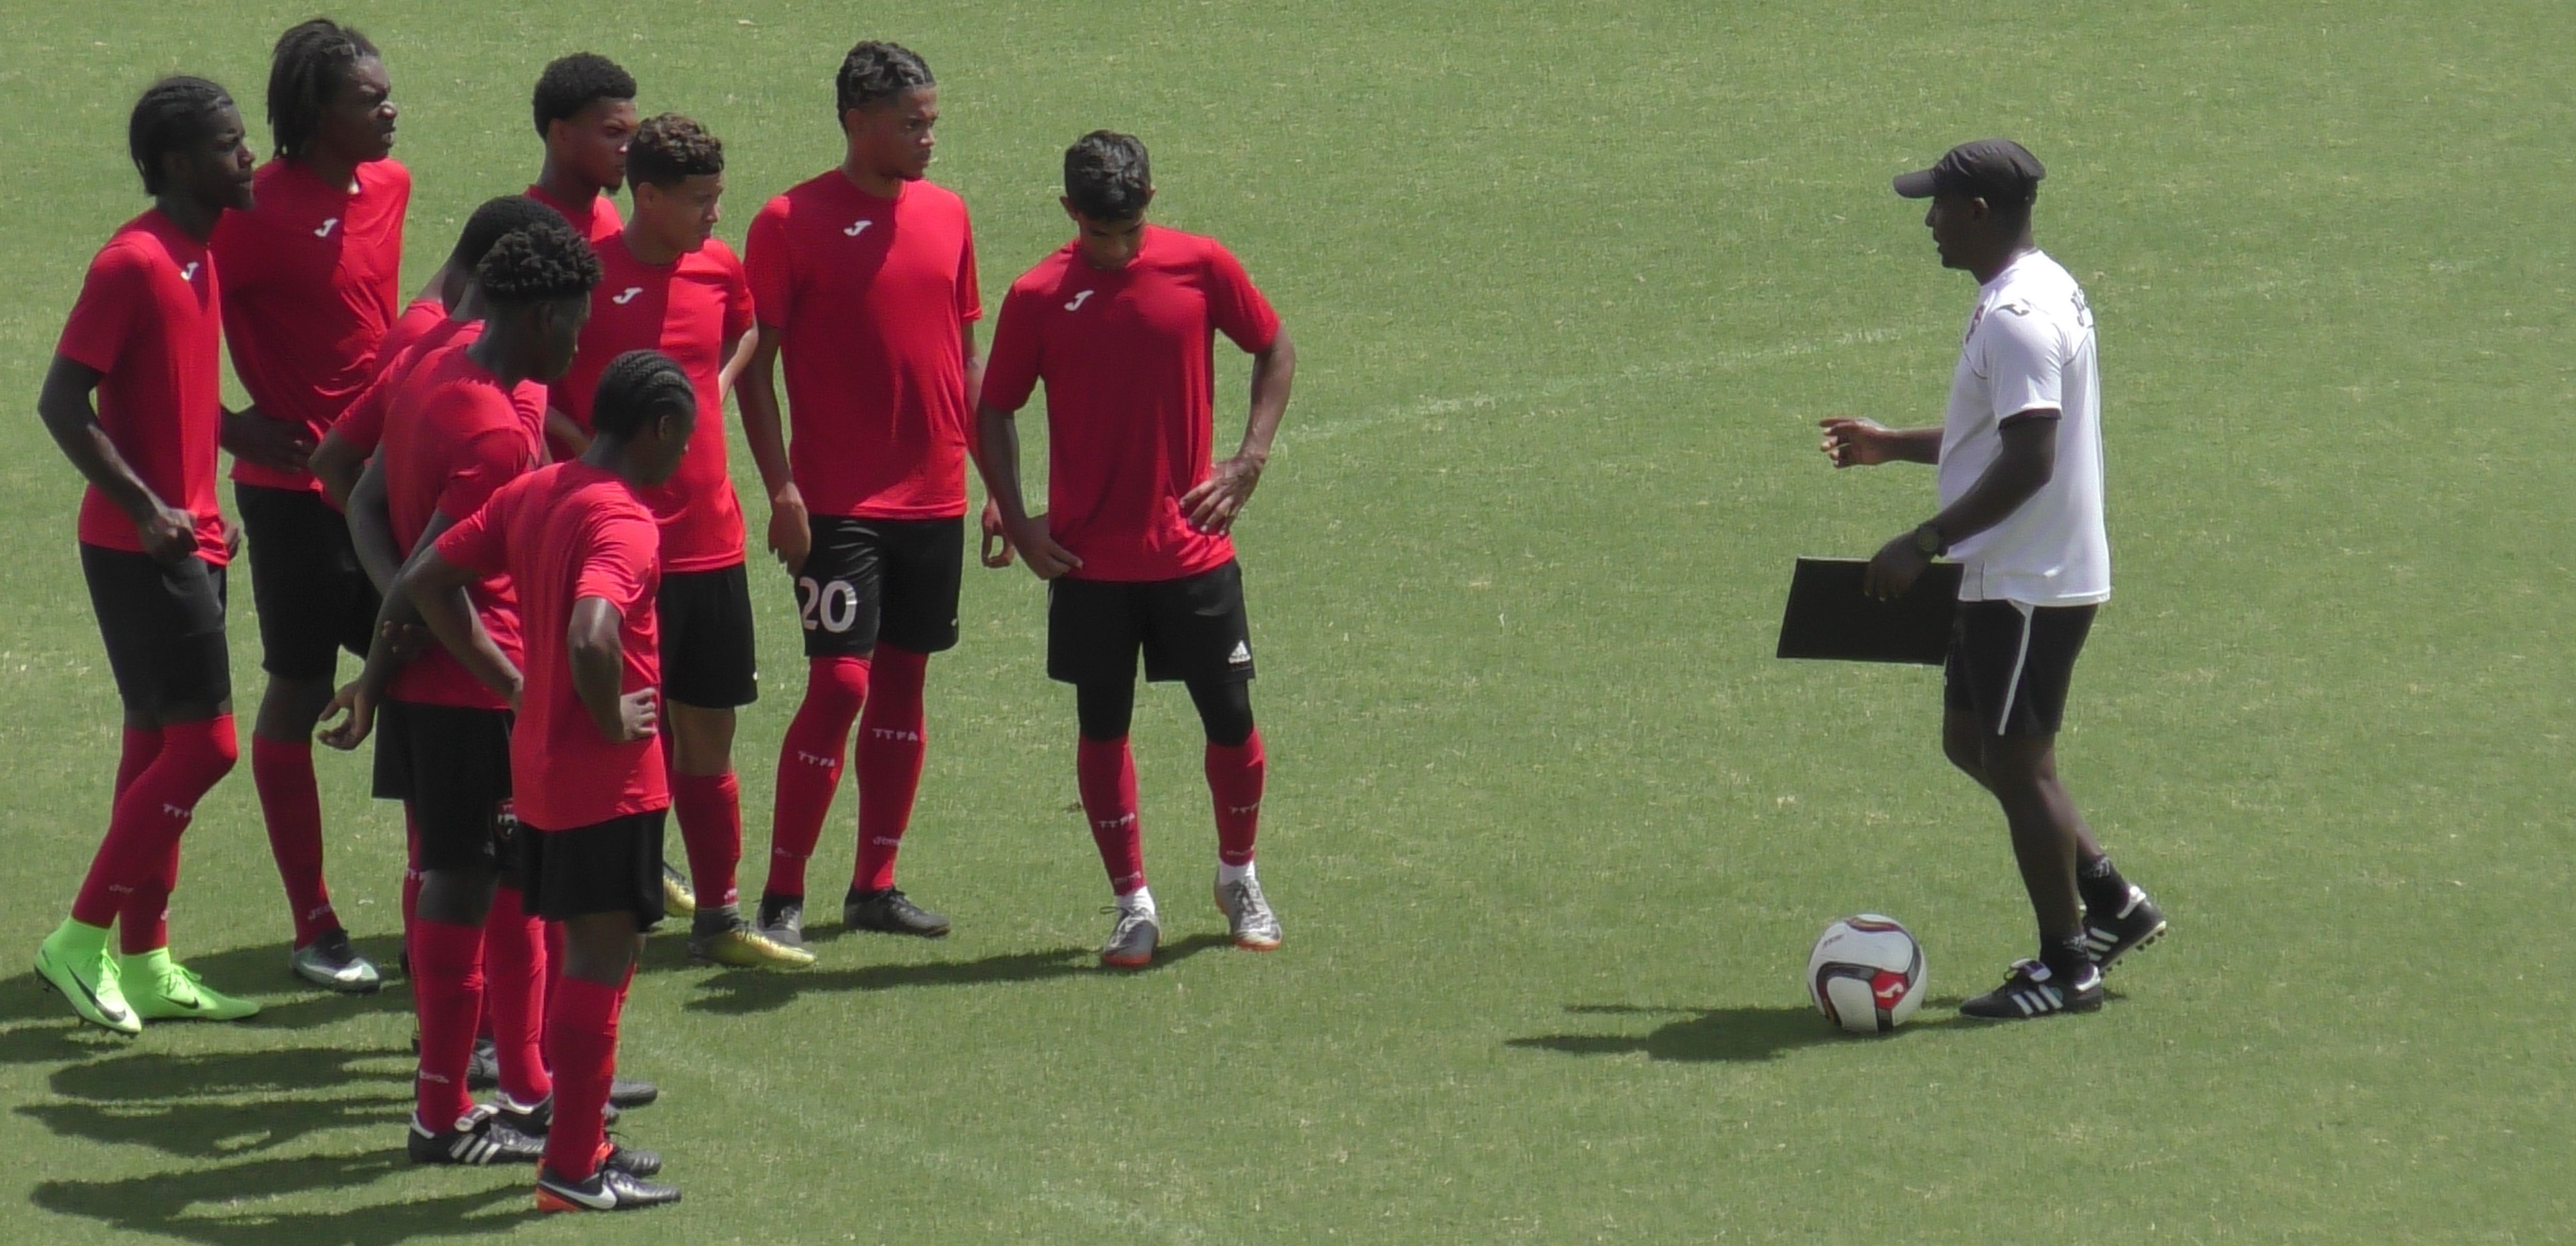 T&T U-20 coach laments team's attitude.